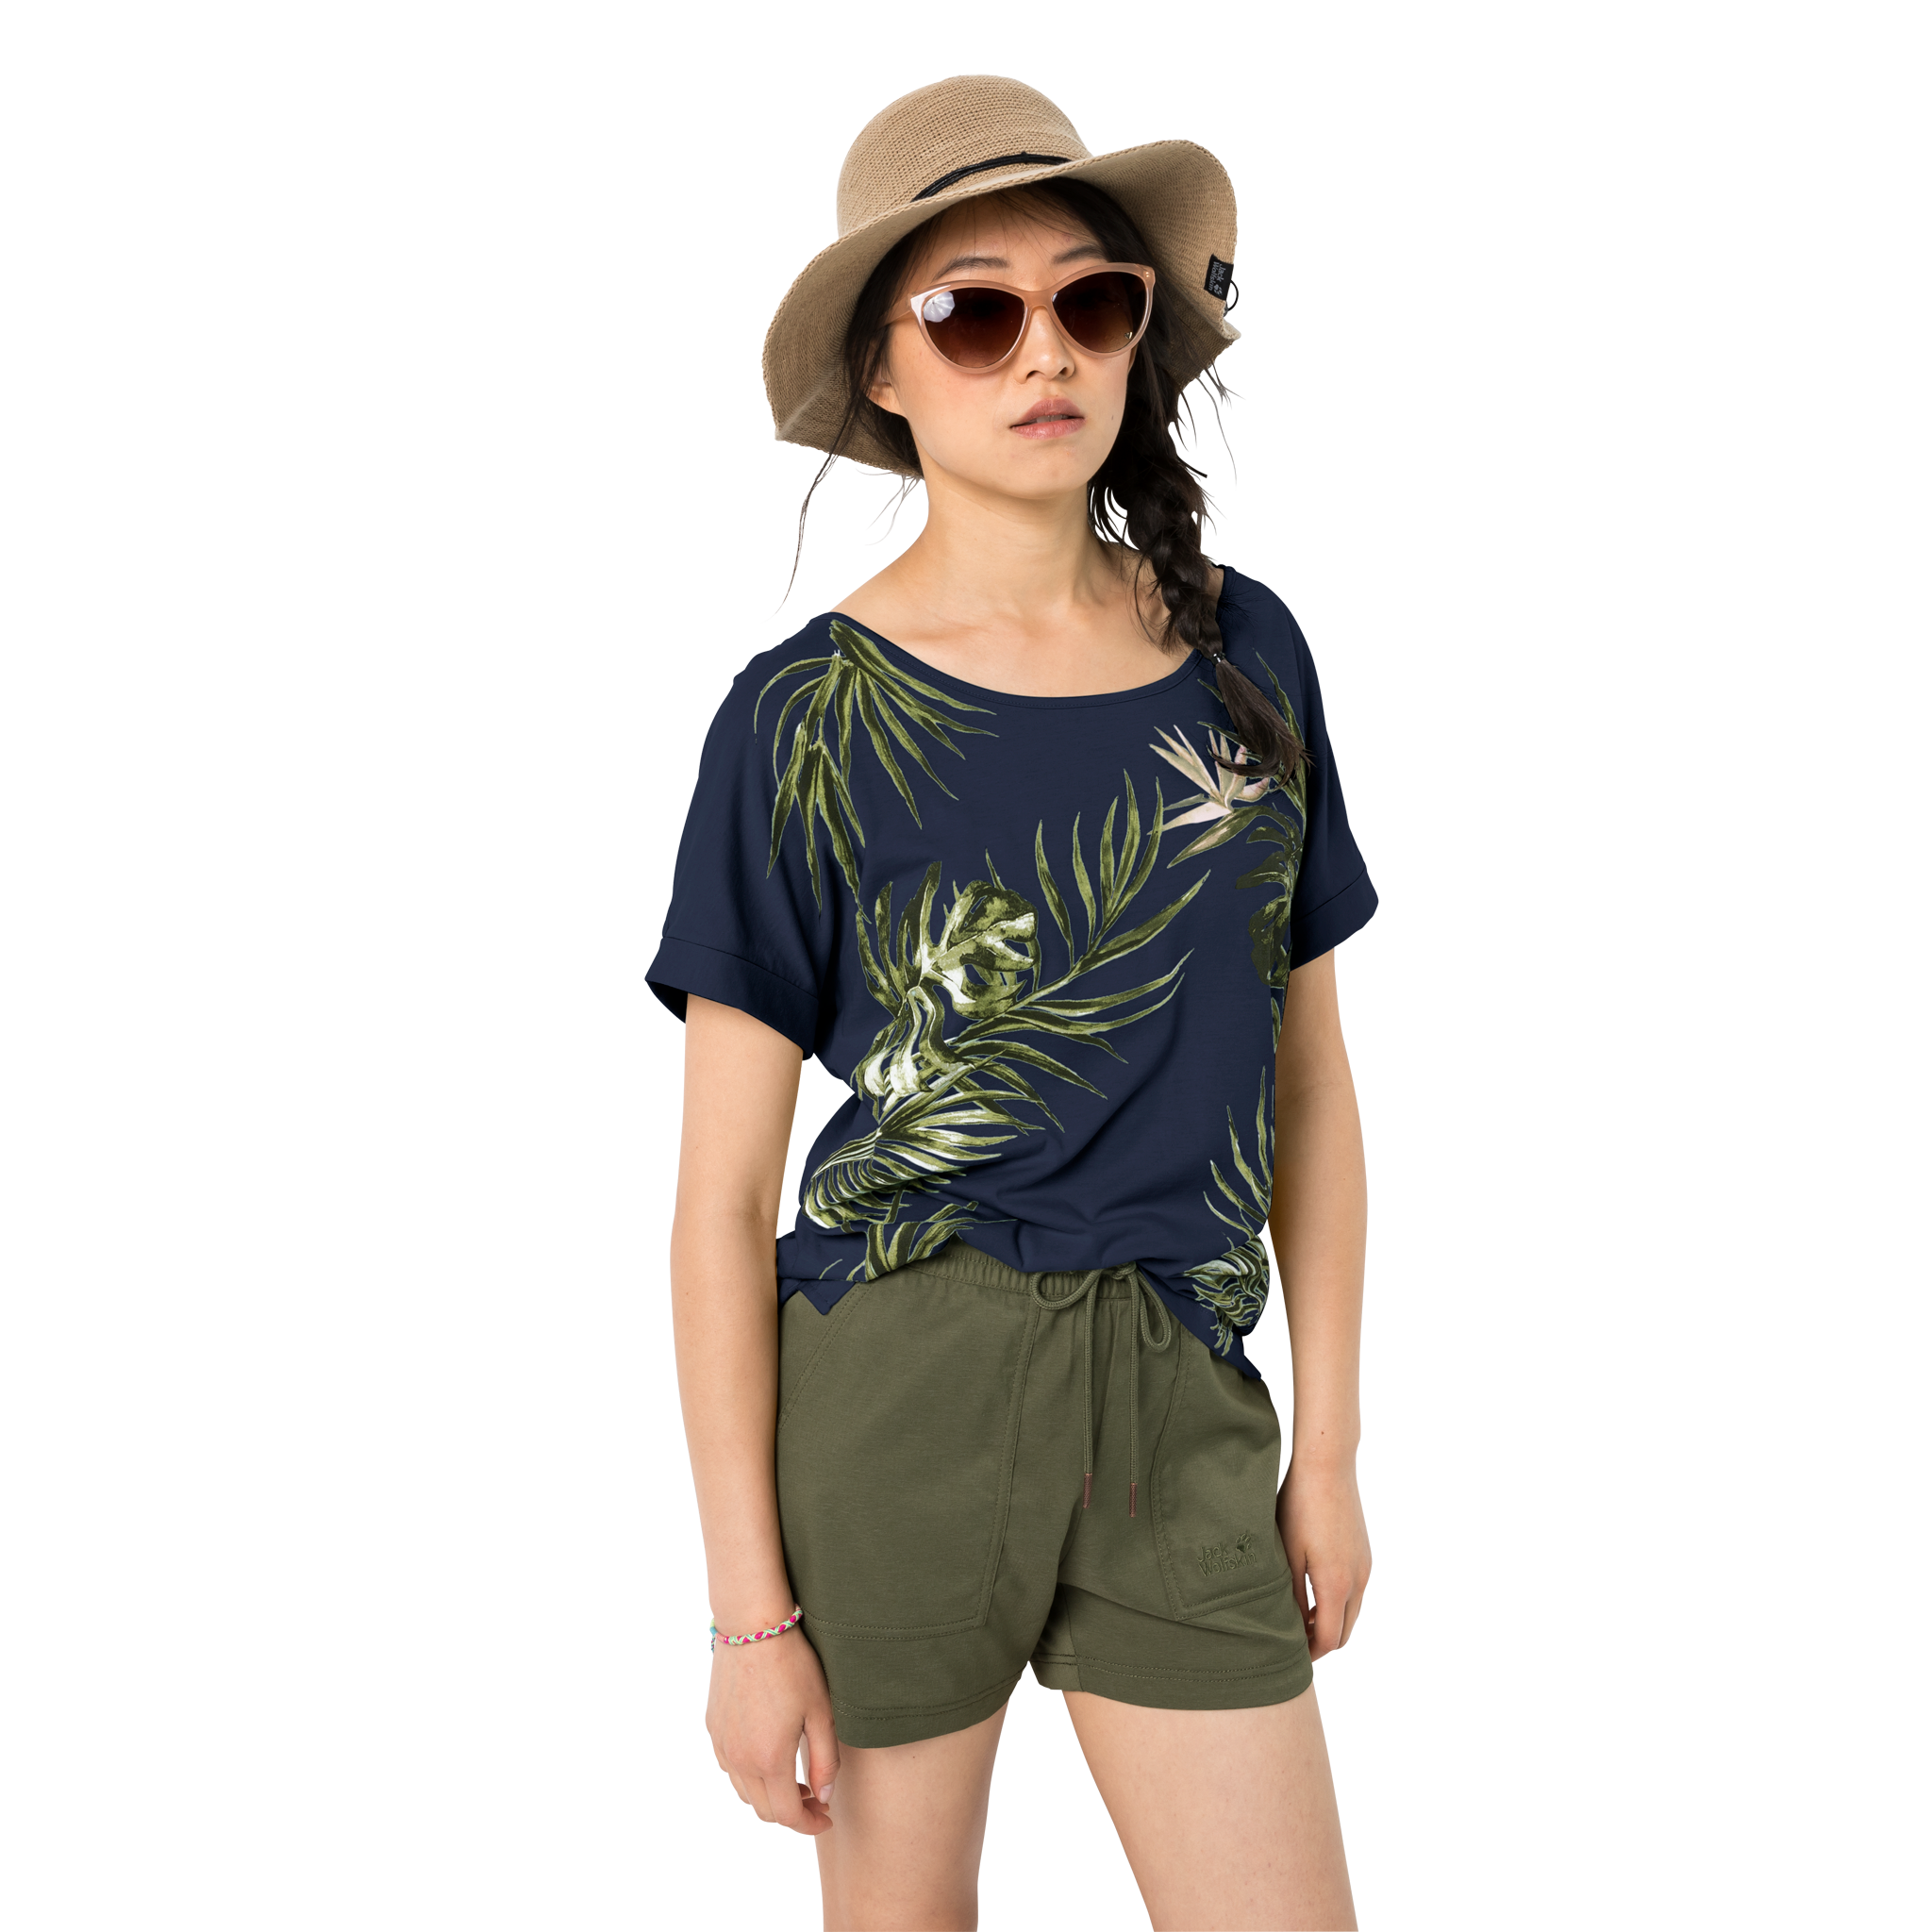 Jack Wolfskin Tropical Leaf Tee for Ladies in Midnight Blue